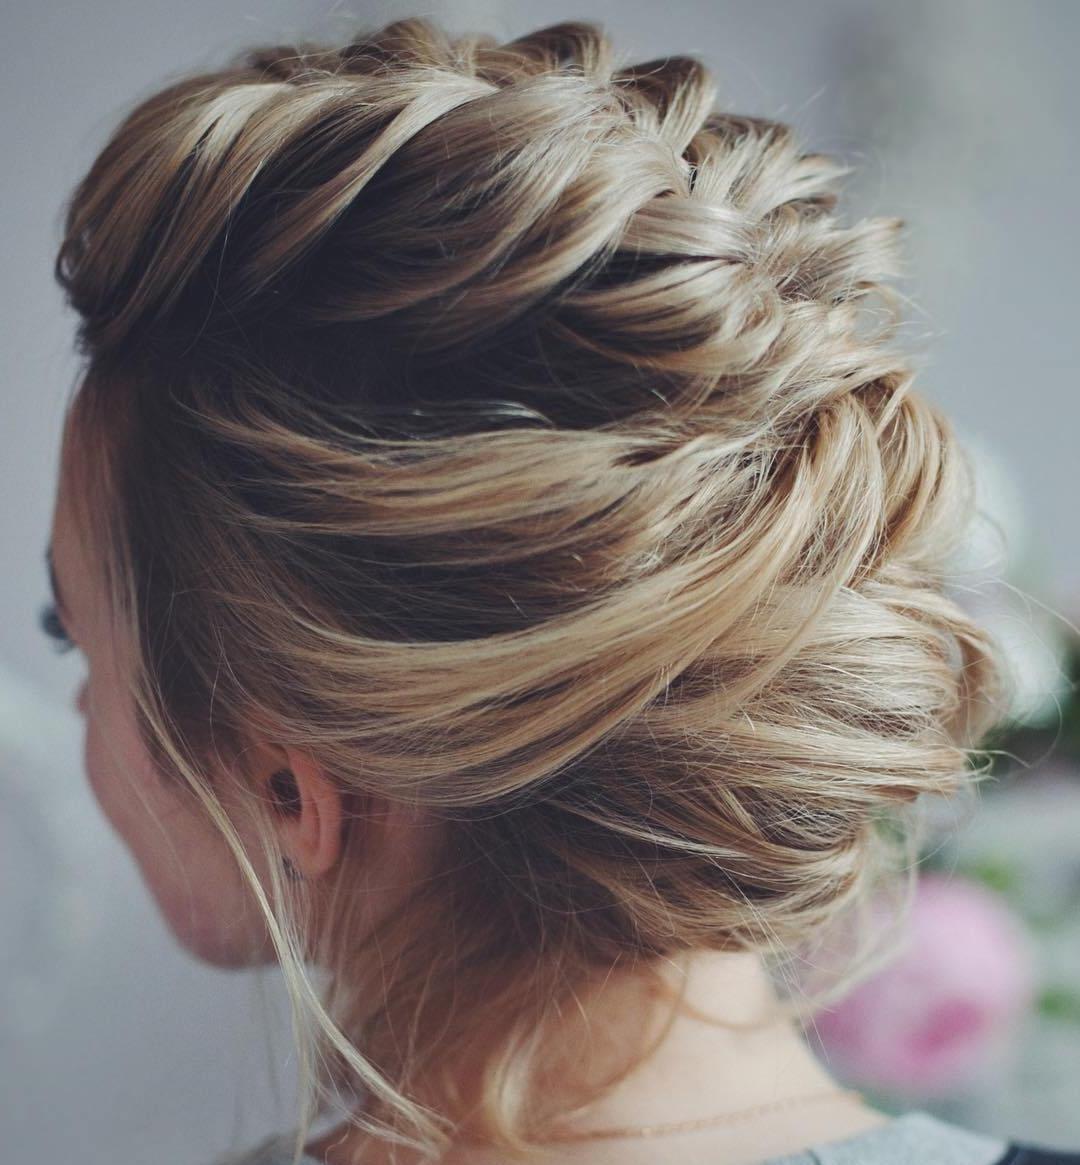 Fashionable Bun And Three Side Braids Prom Updos Regarding 50 Hottest Prom Hairstyles For Short Hair (Gallery 7 of 20)